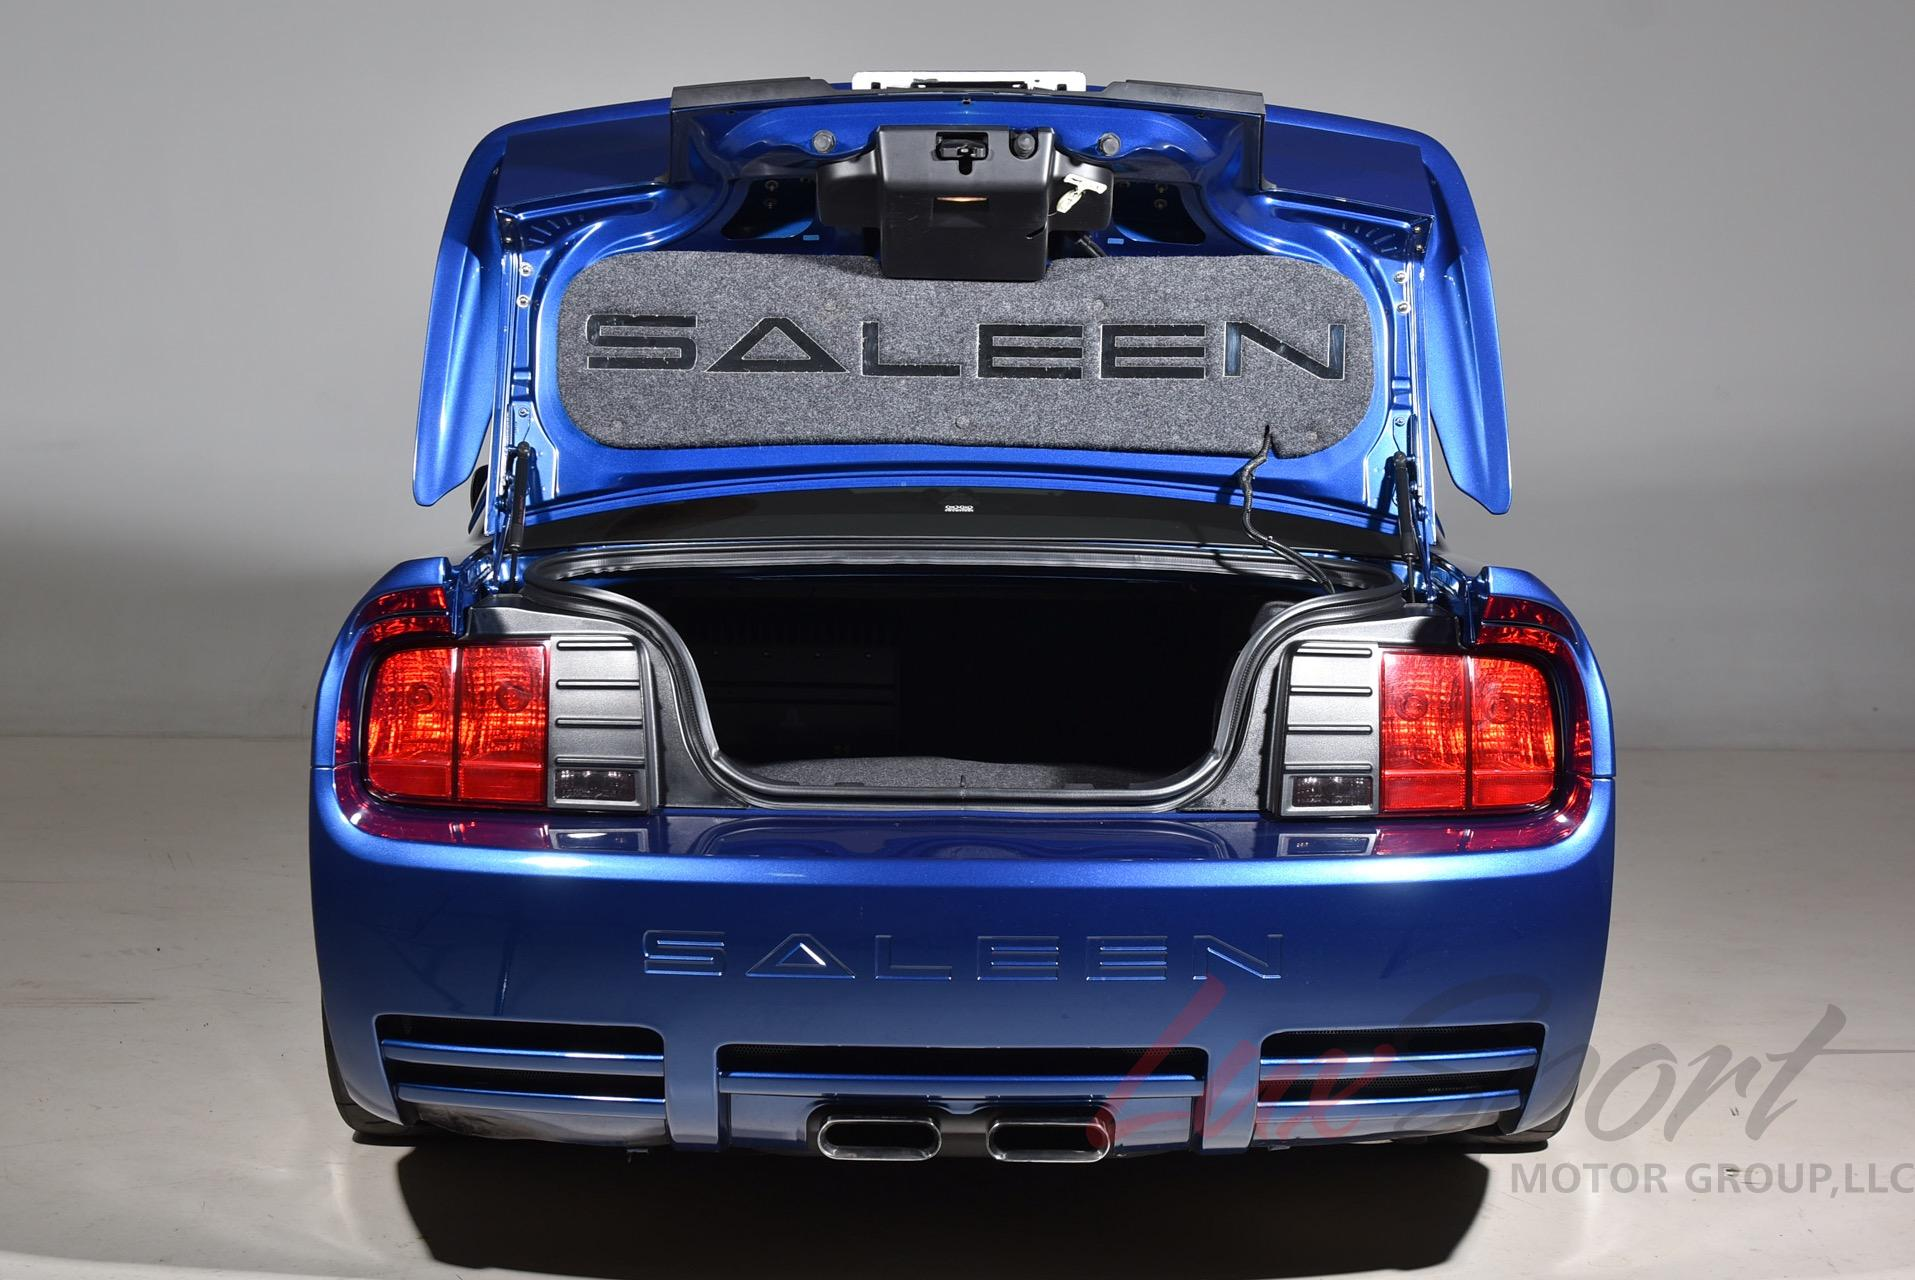 Used 2006 Ford Mustang SALEEN | Syosset, NY